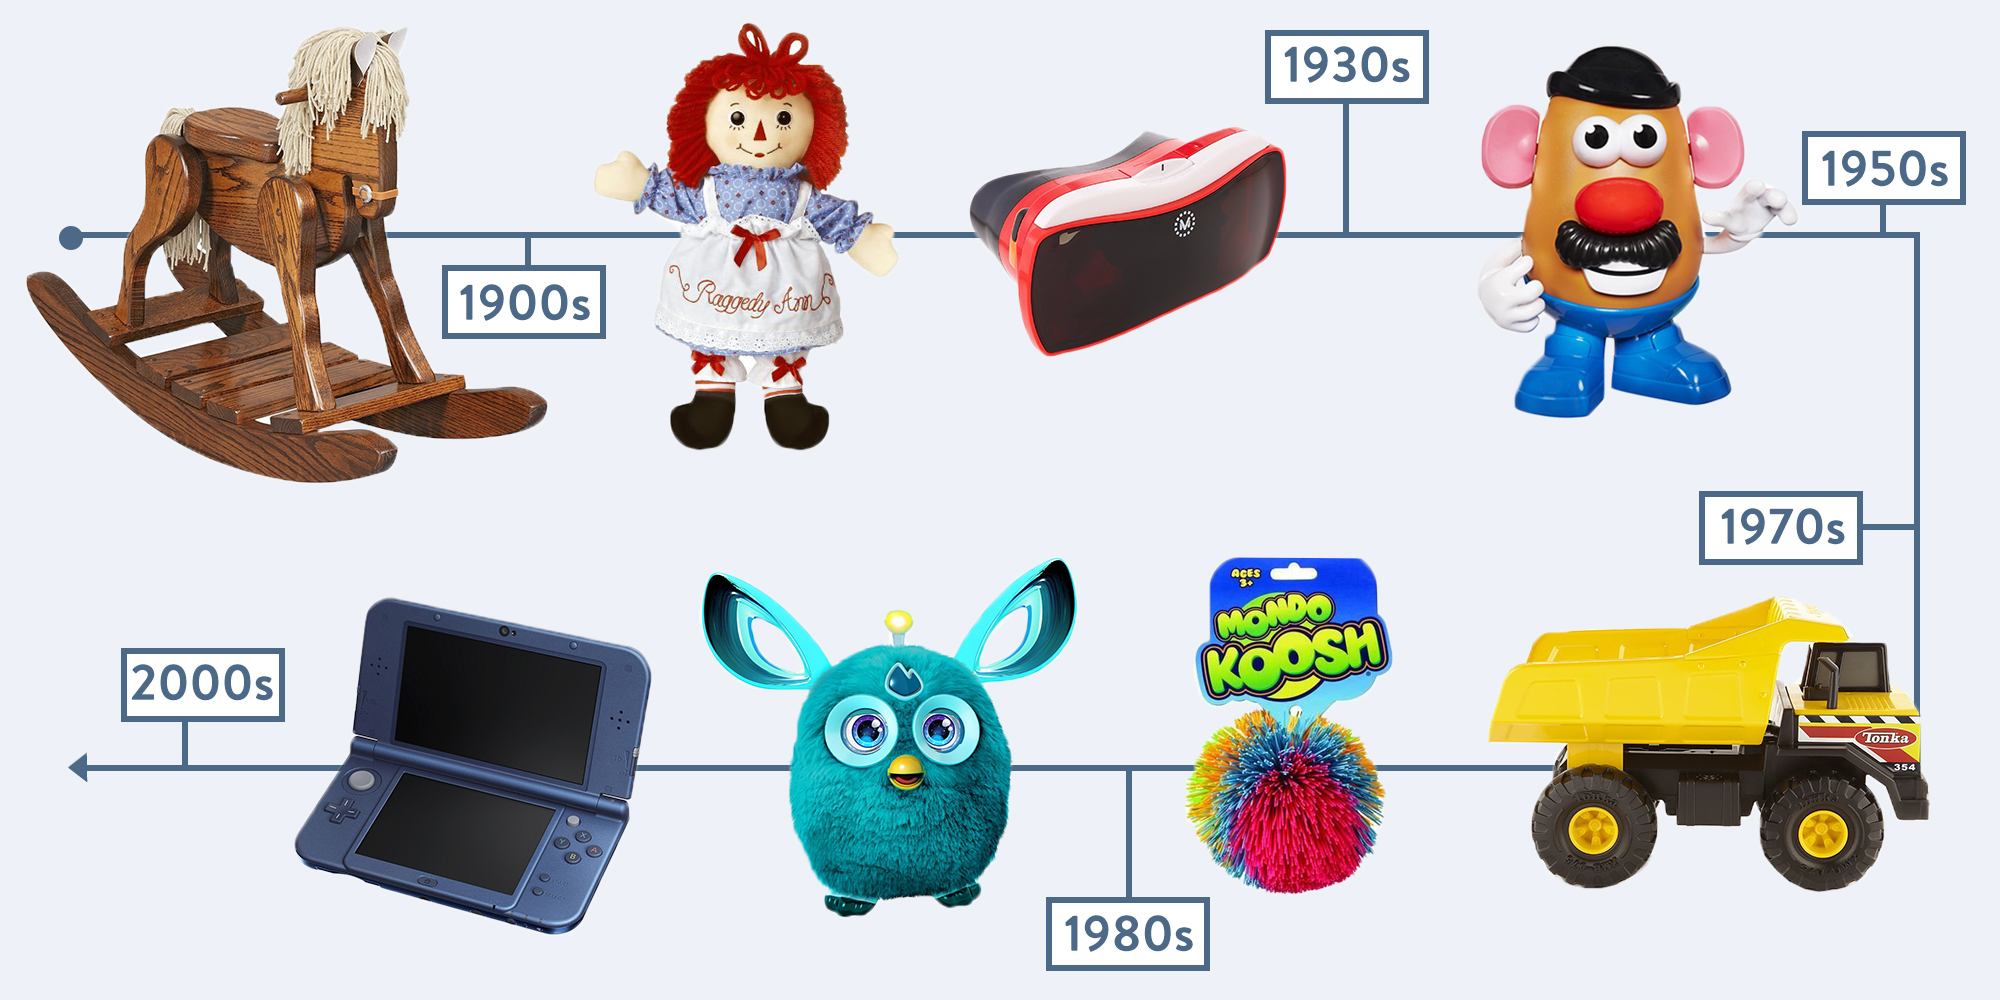 52 Most Popular Gifts & Toys for Kids in Every Decade ...